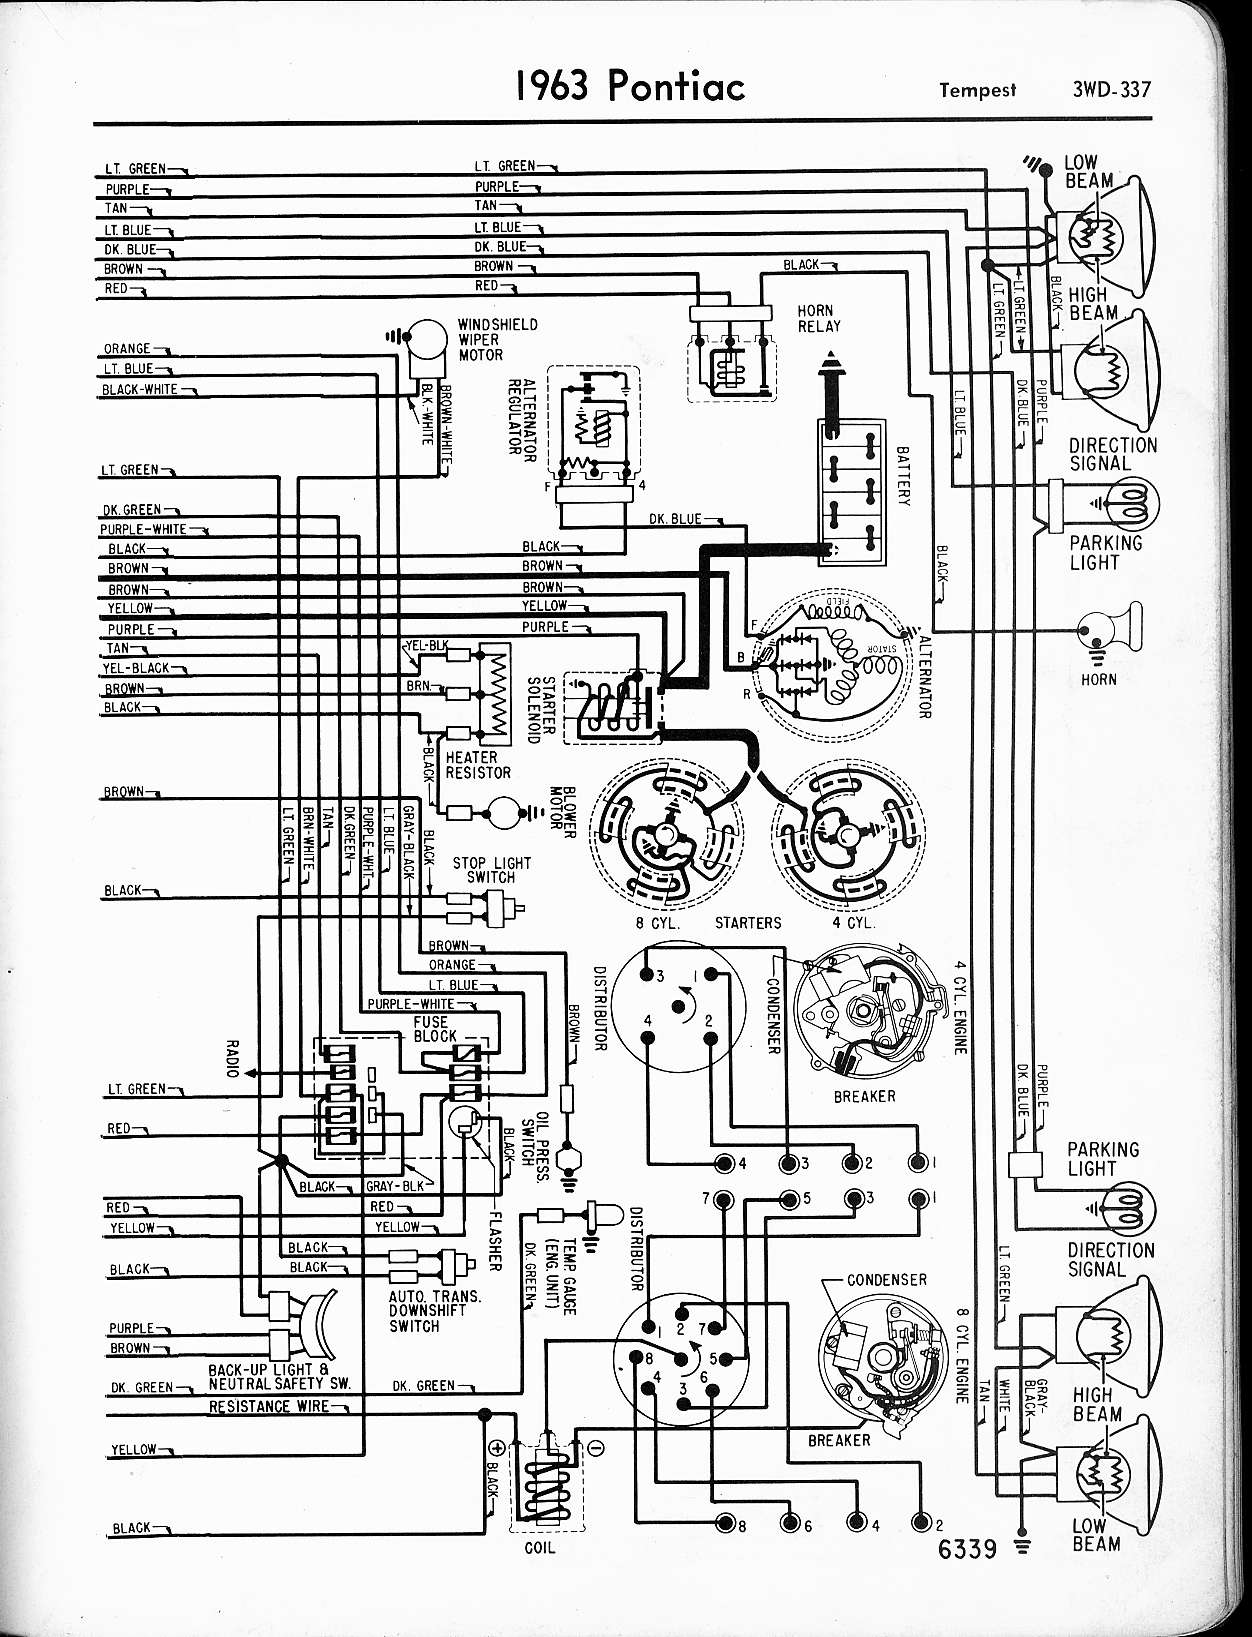 1957 pontiac wiring diagram wiring diagram Can Light Wiring Diagram 1965 pontiac lemans wiring diagram wiring librarypontiac wiring 1957 1965 schematic wiring diagram 1963 tempest wiring